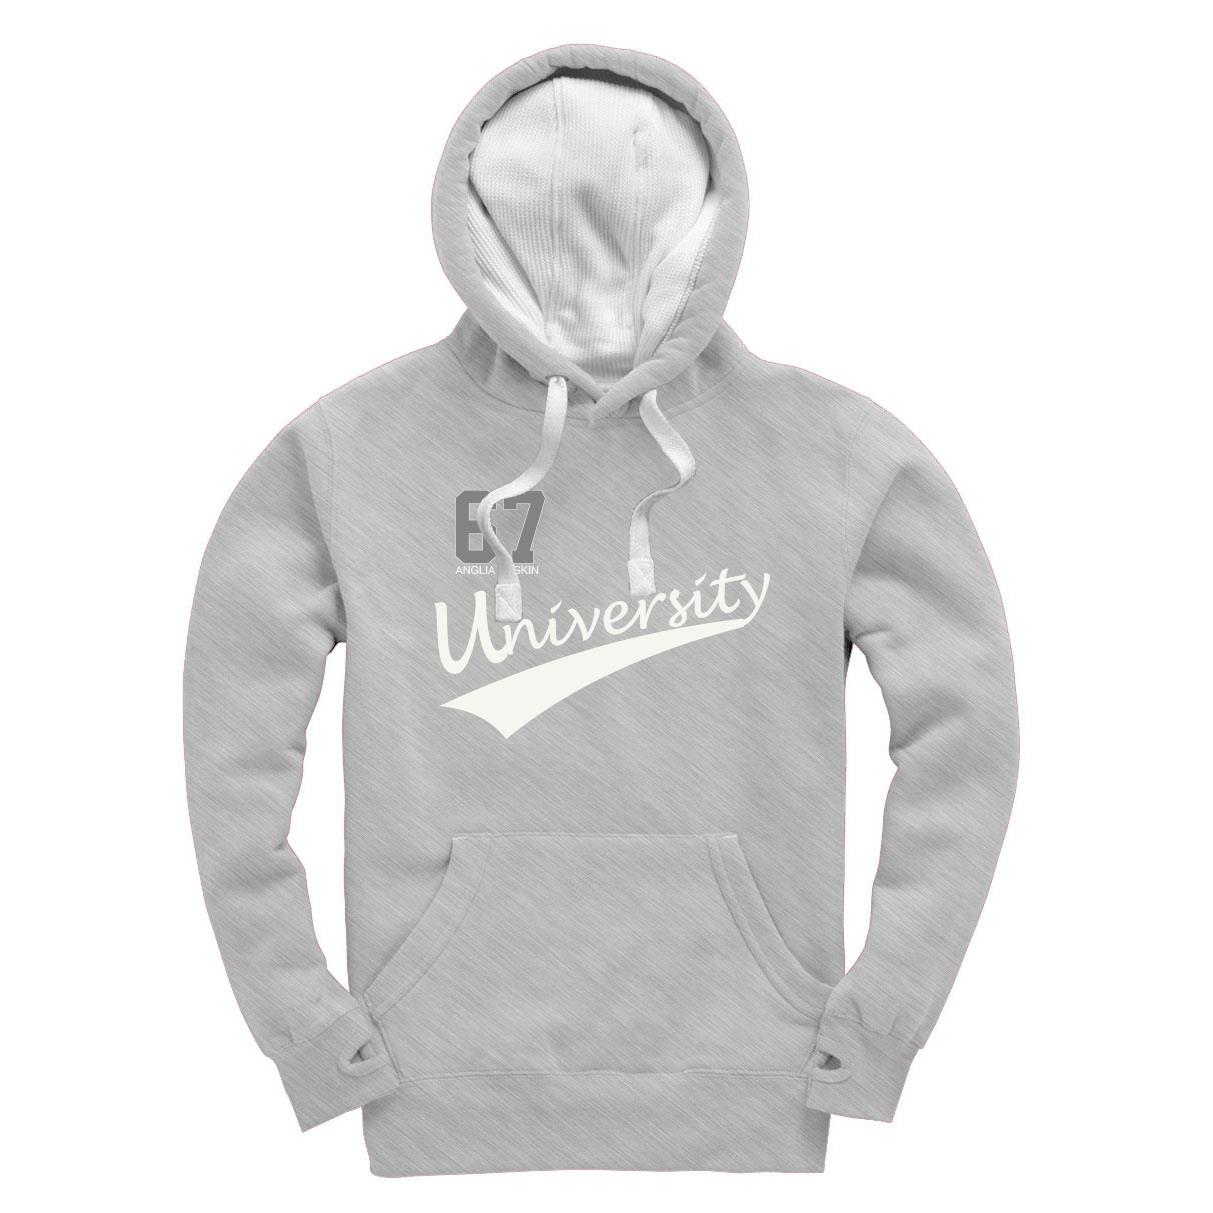 Ultra Soft Feel Hooded Top